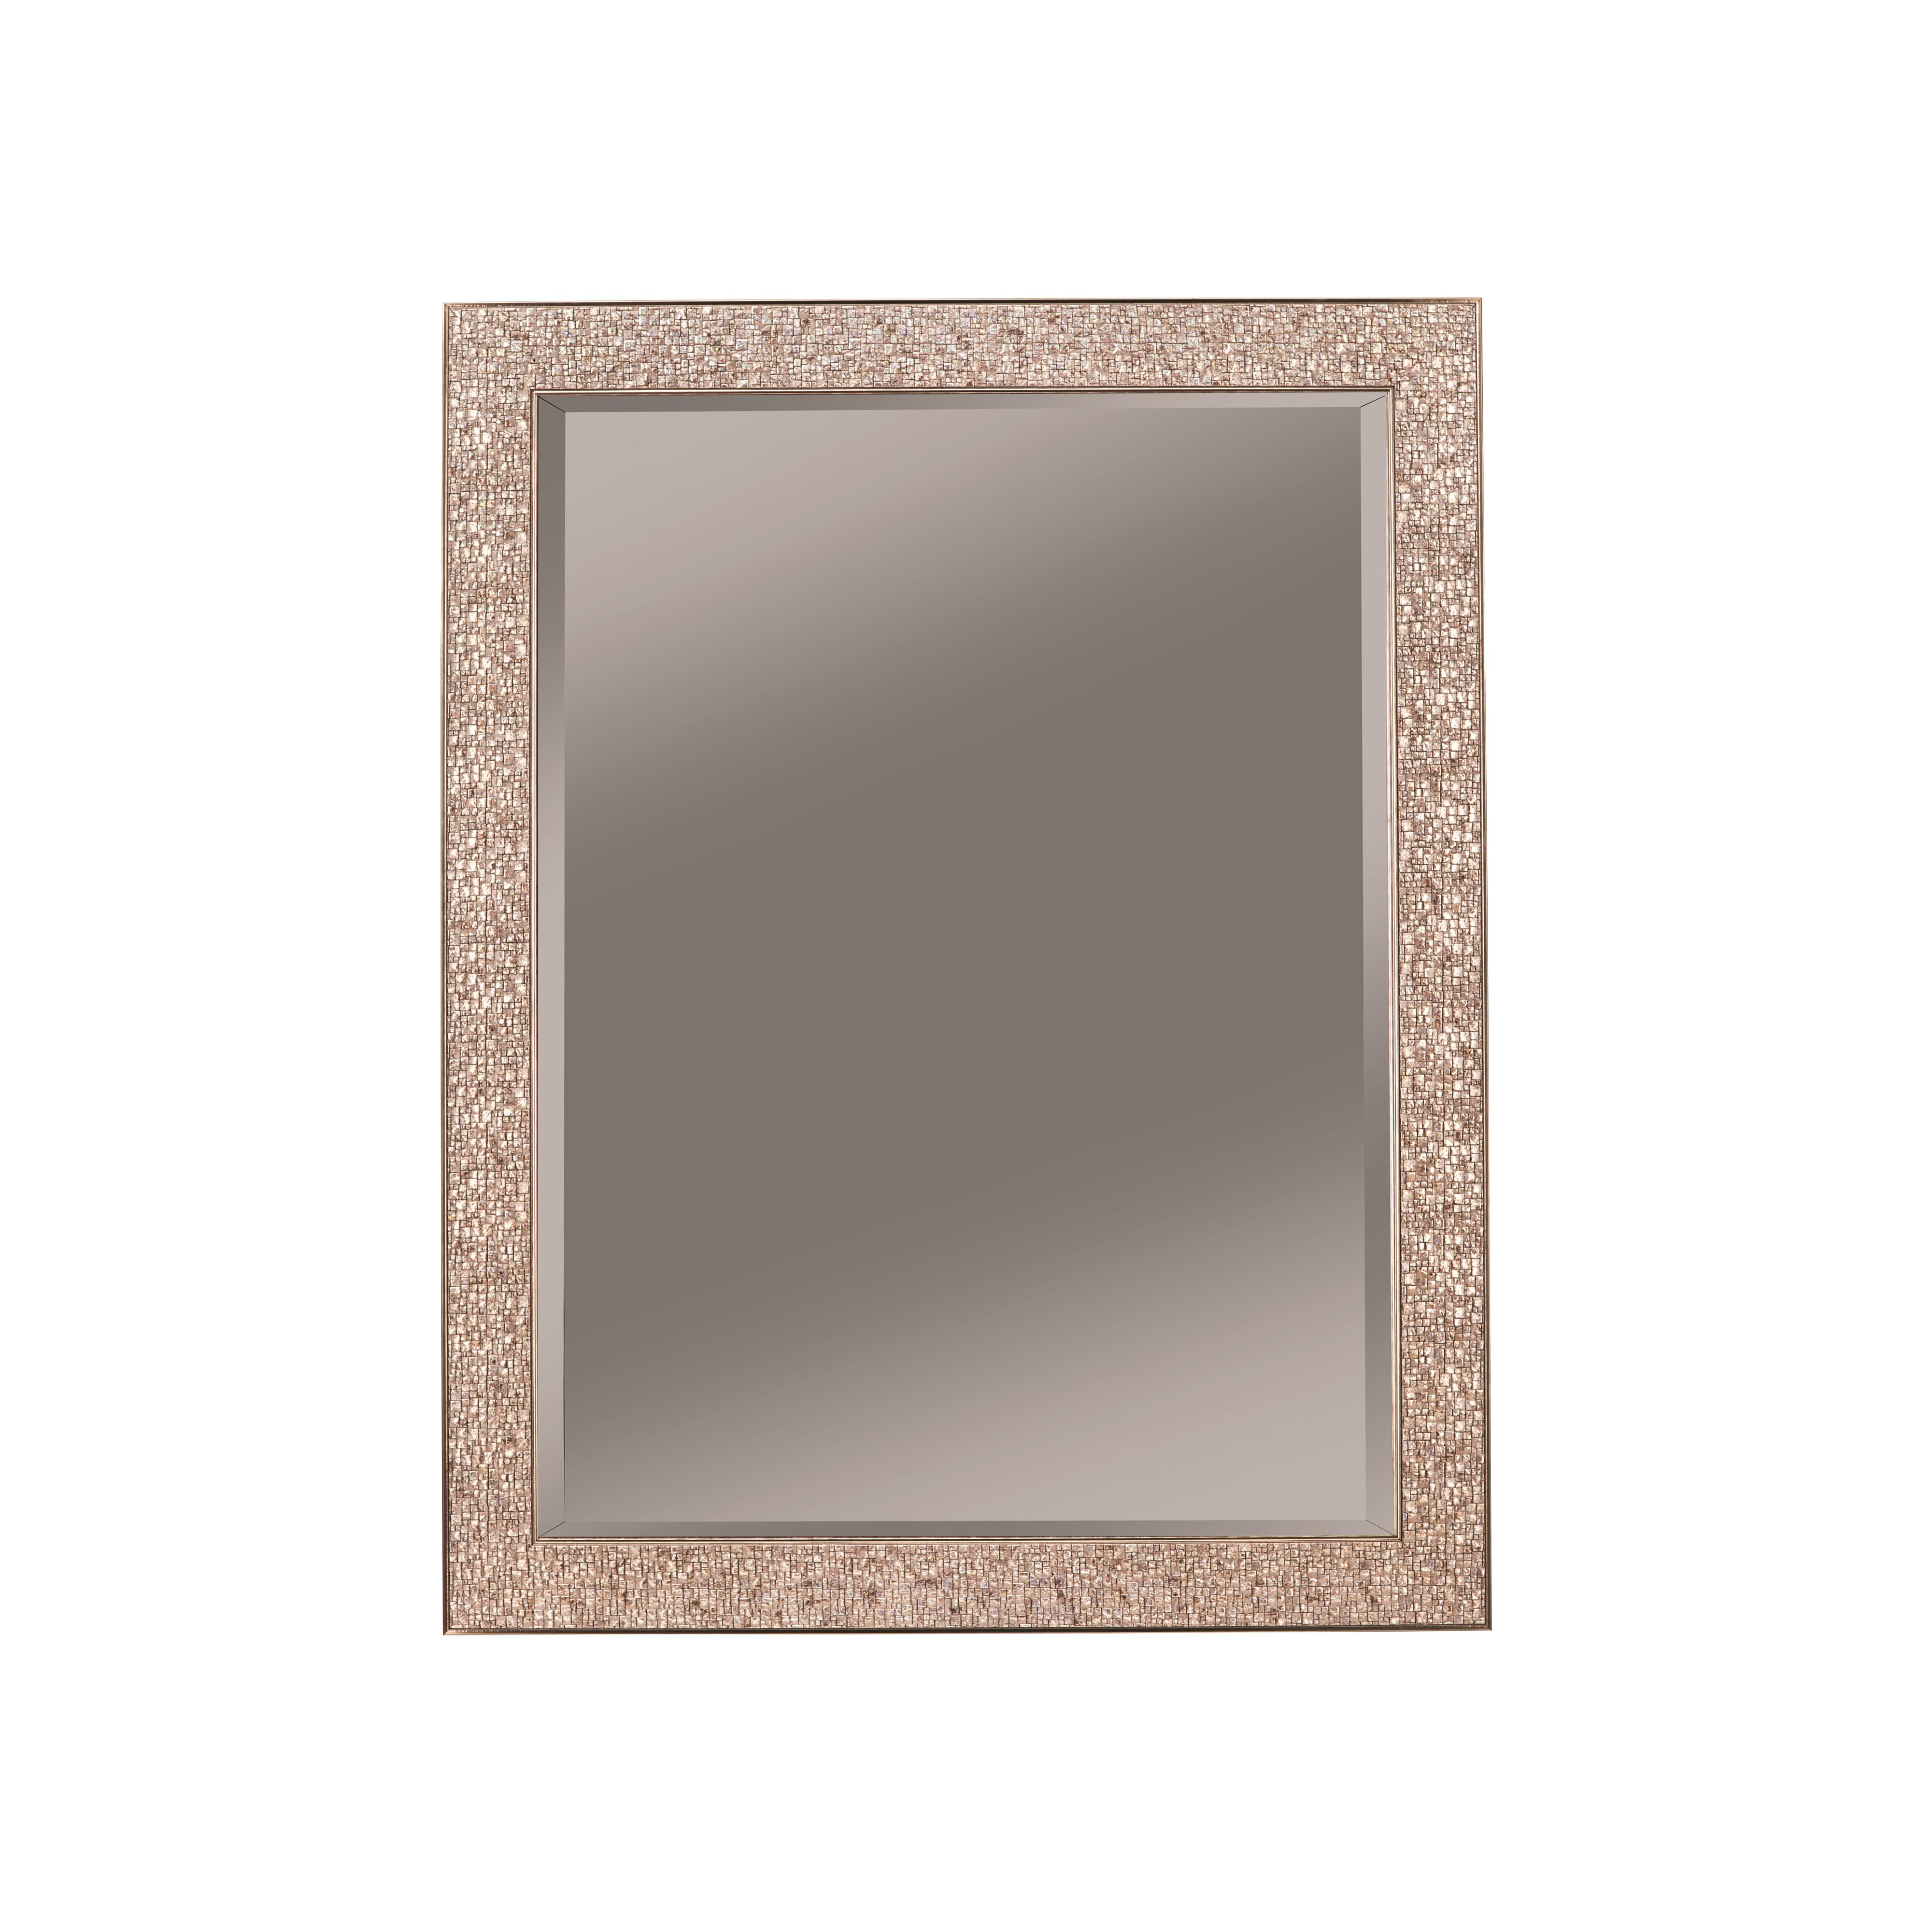 Coaster Accent Mirrors Mirror - Item Number: 901996